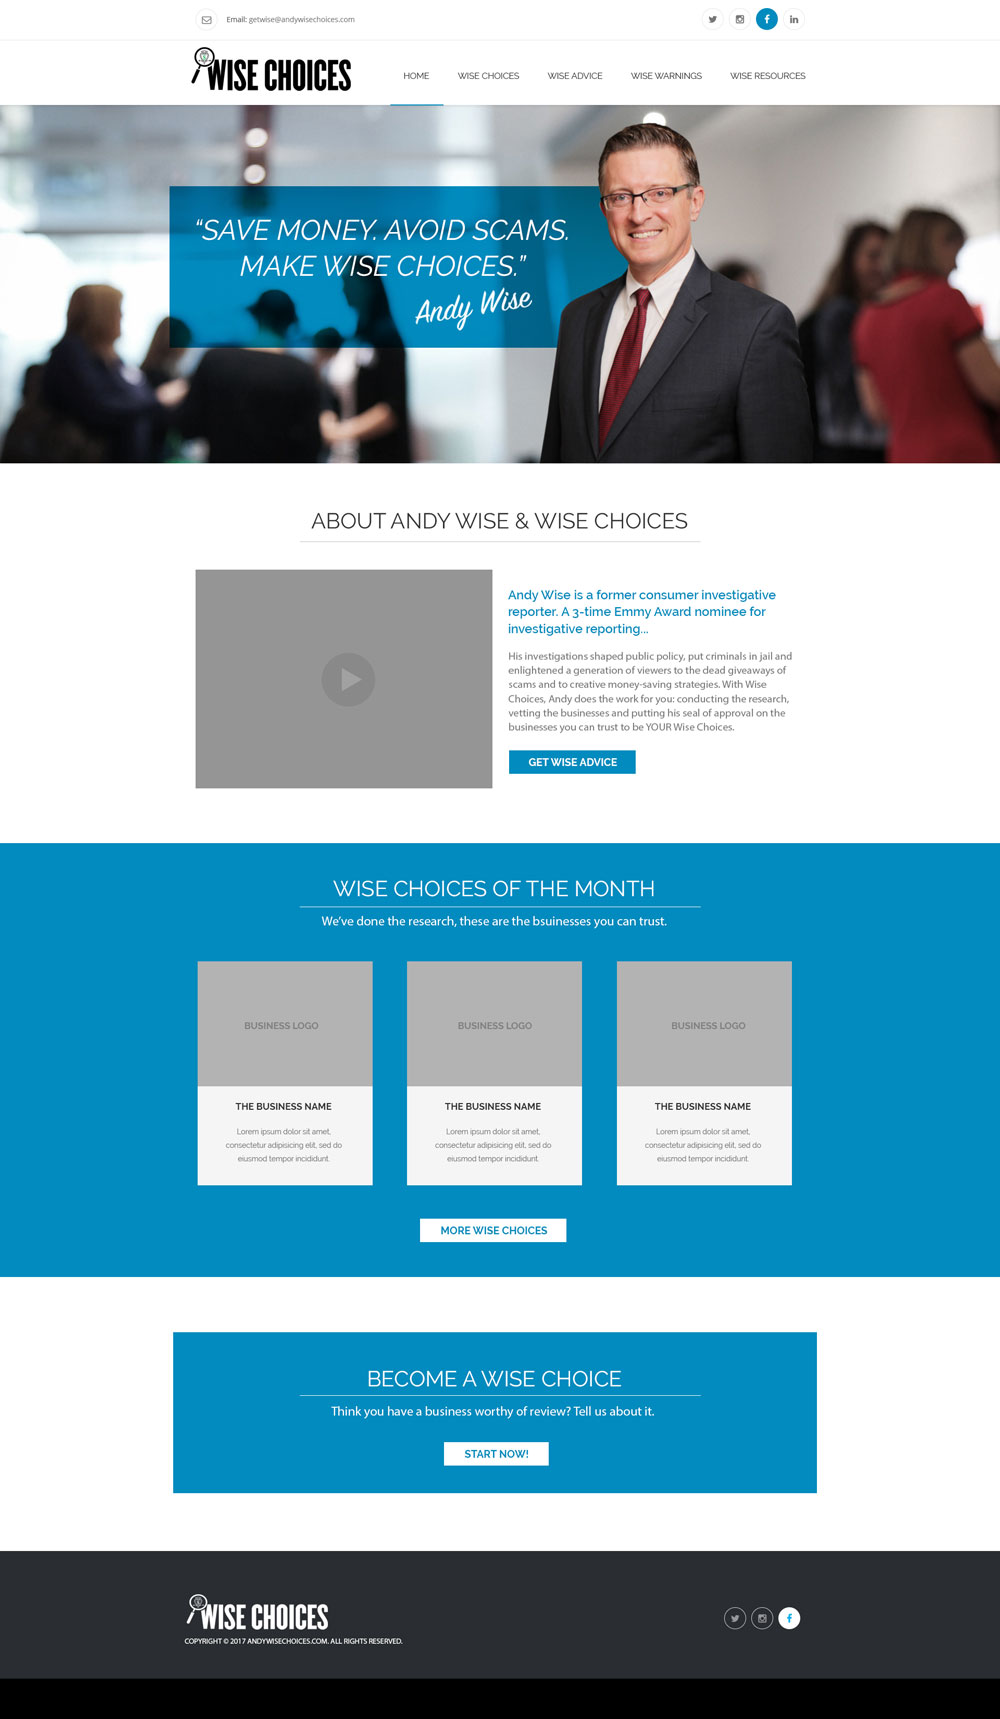 an image of website concept design for andywisechoices.com